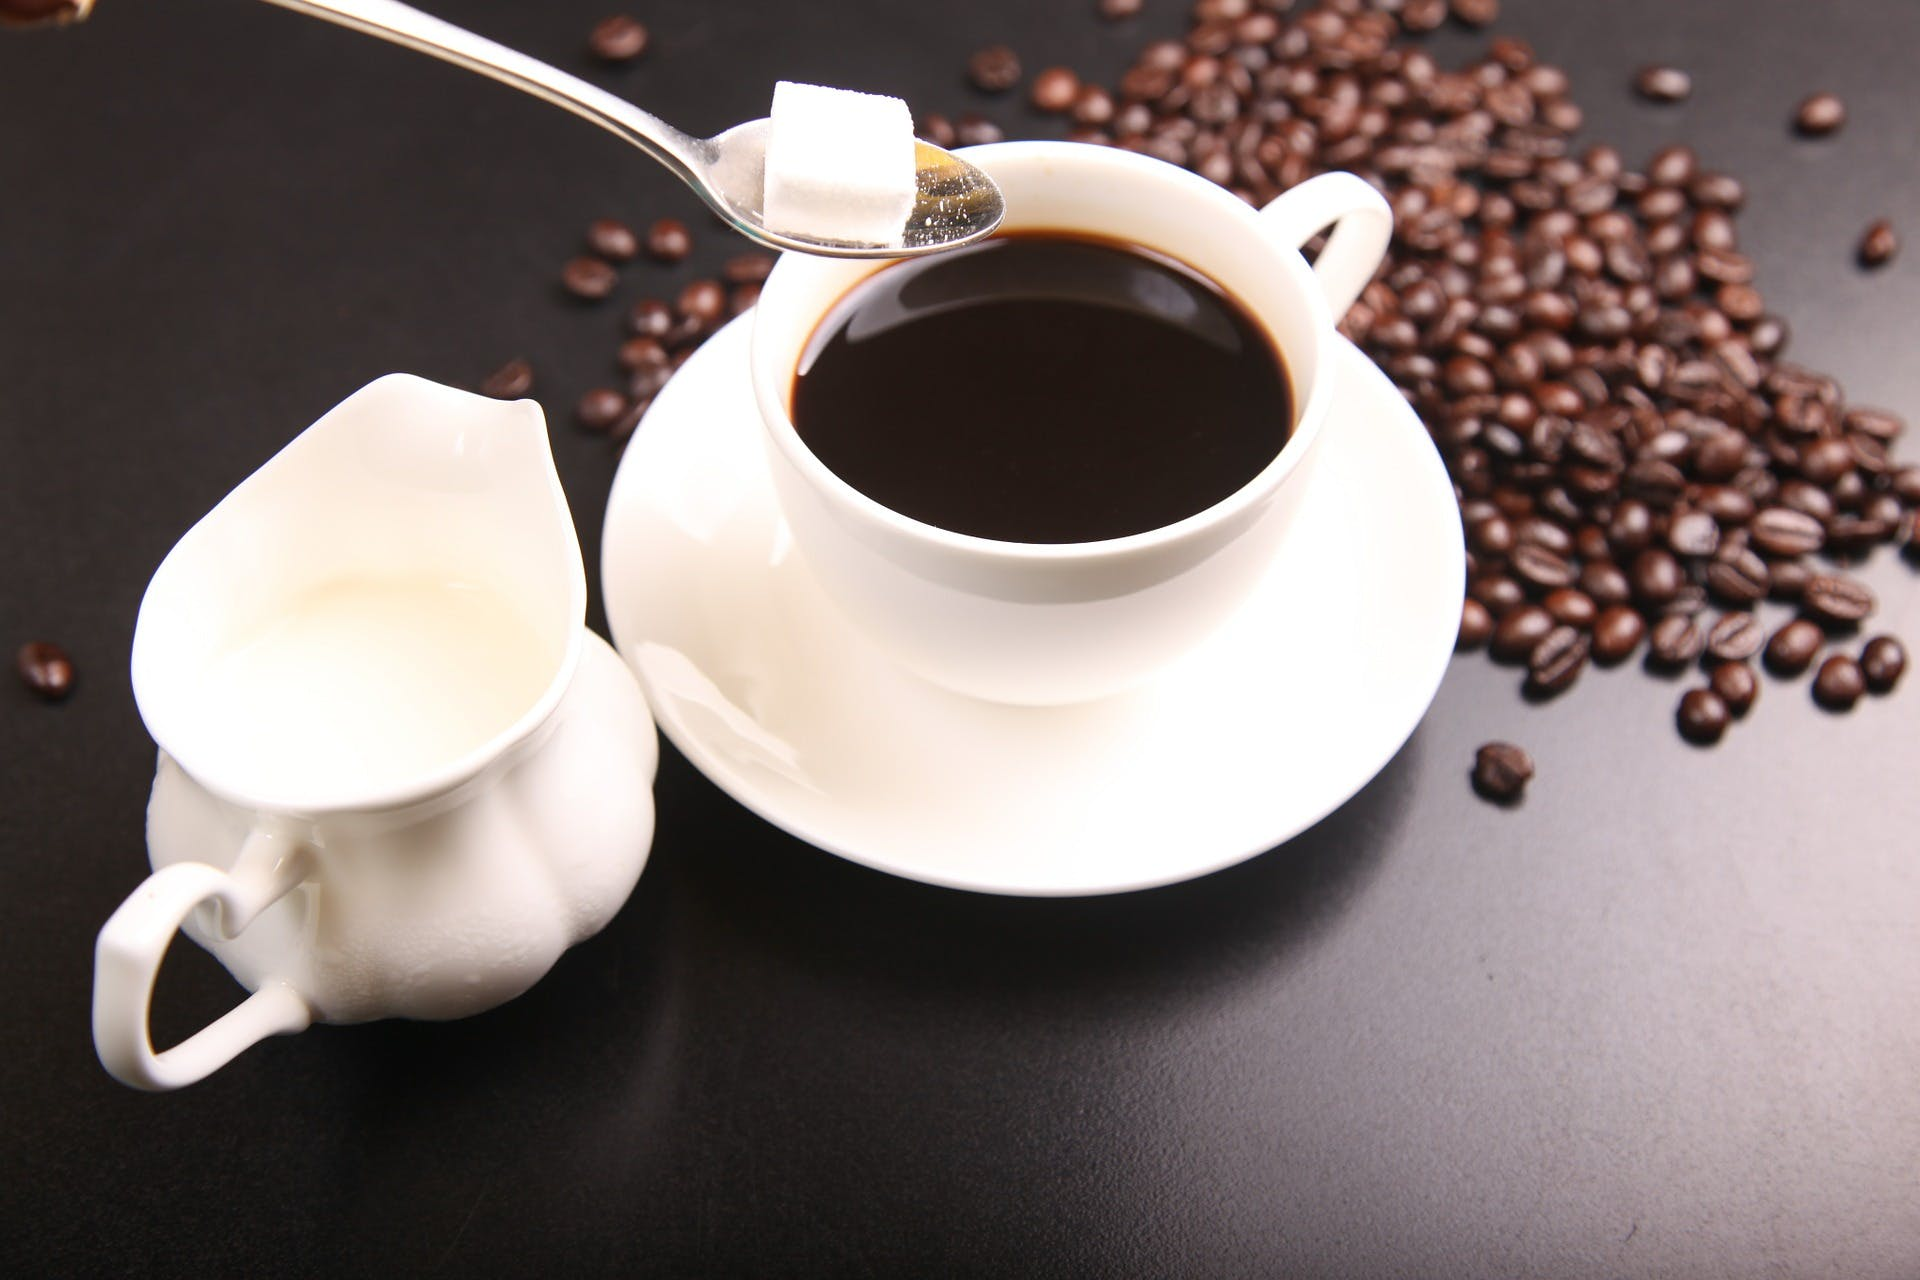 Cube of sugar being added to black coffee with a cup of milk on the side and coffee beans spread across the table